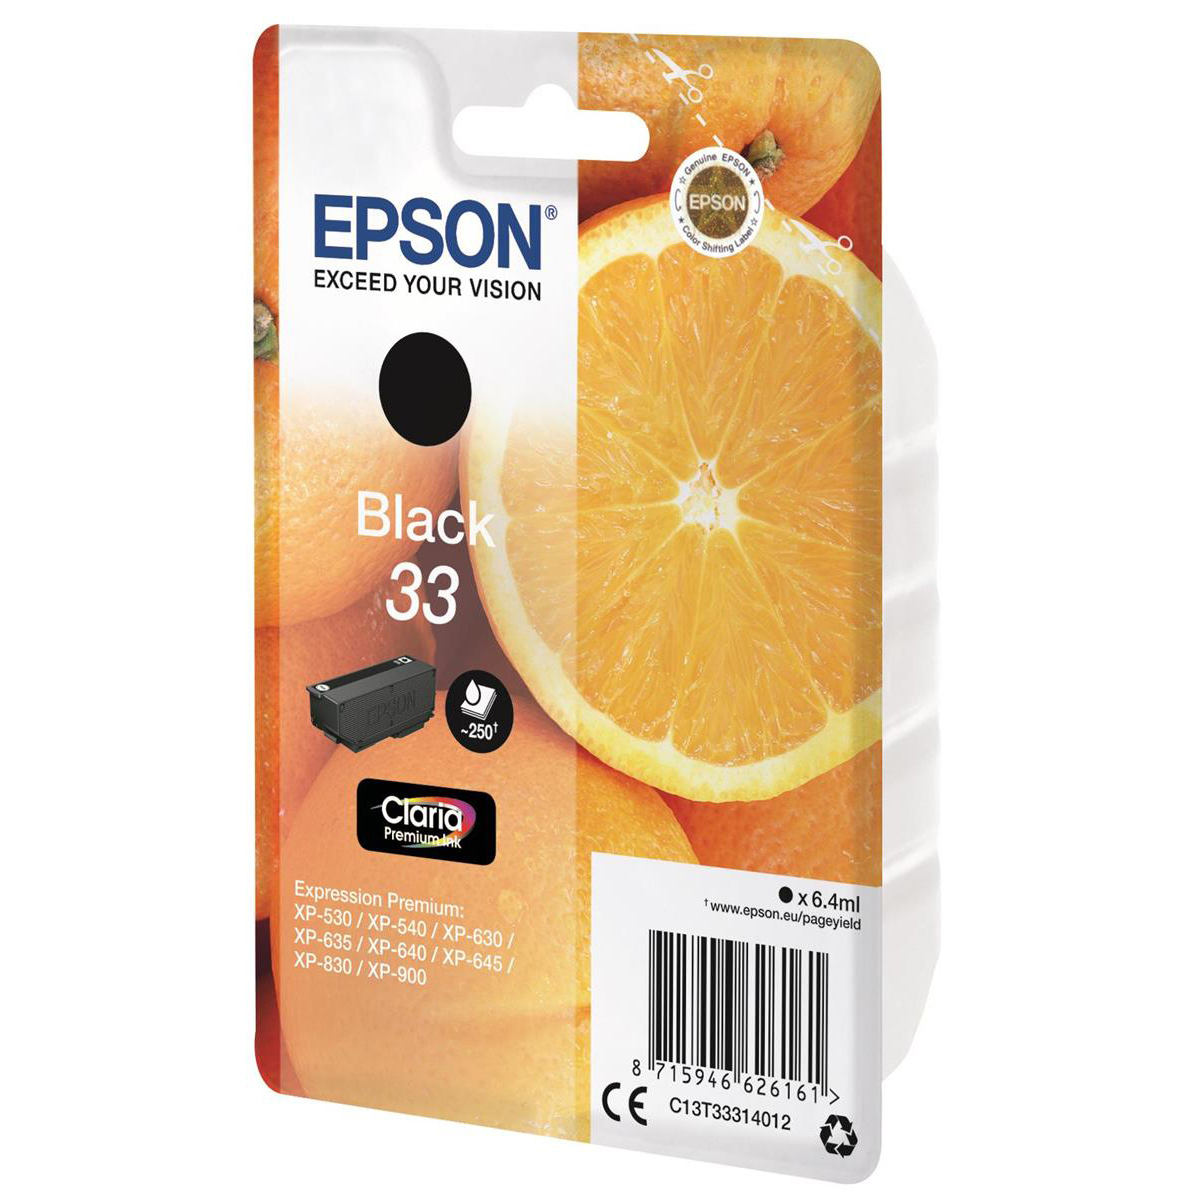 Epson T33 Inkjet Cartridge Orange Page Life 250pp 6.4ml Black Ref C13T33314012